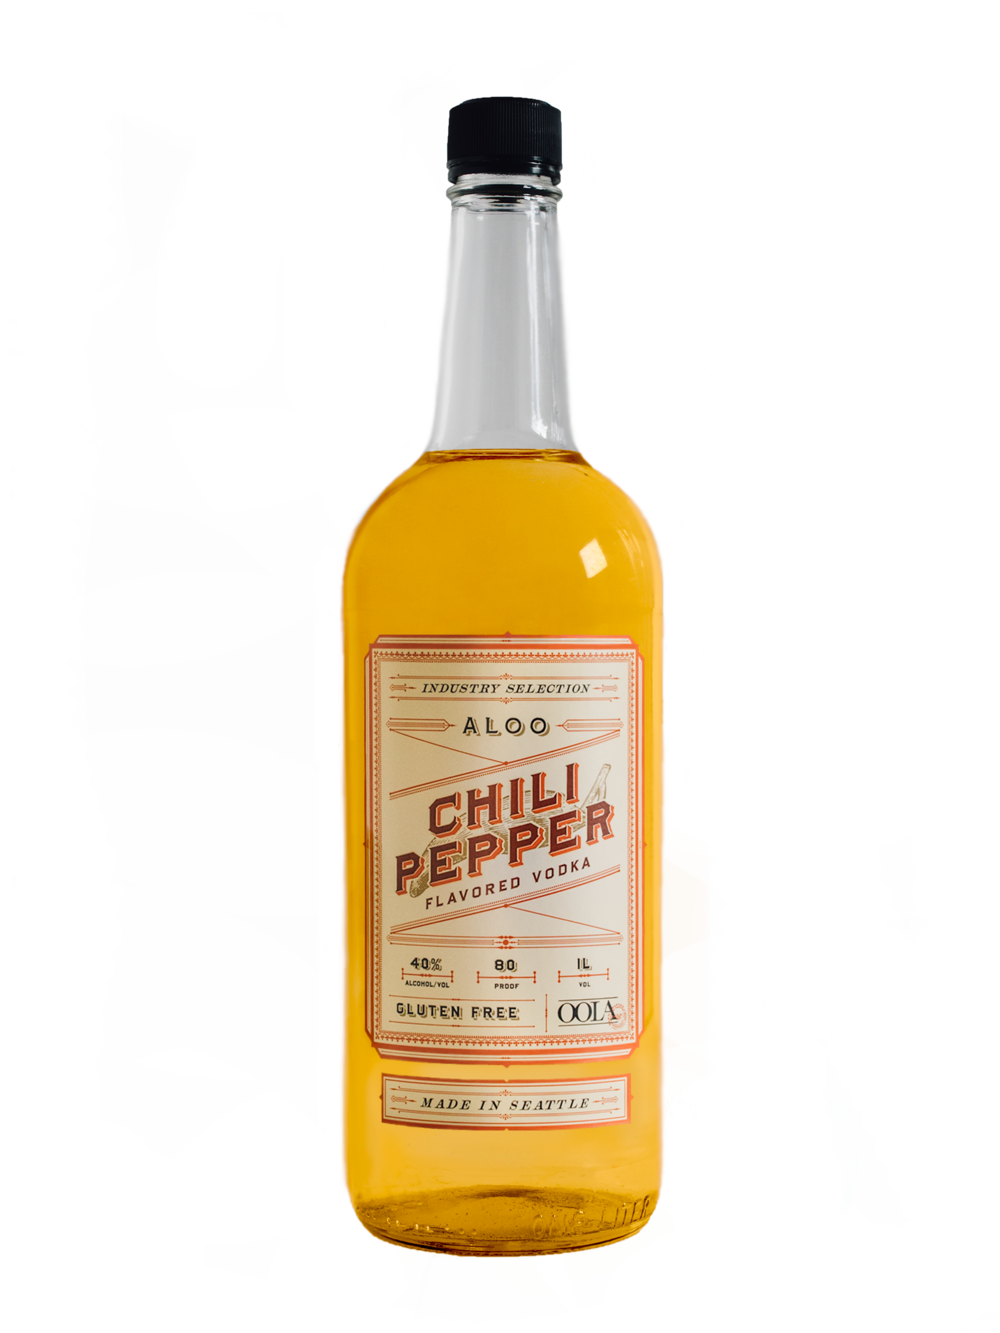 aloo_chili_pepper_vodka_bottle_shot_2018.png